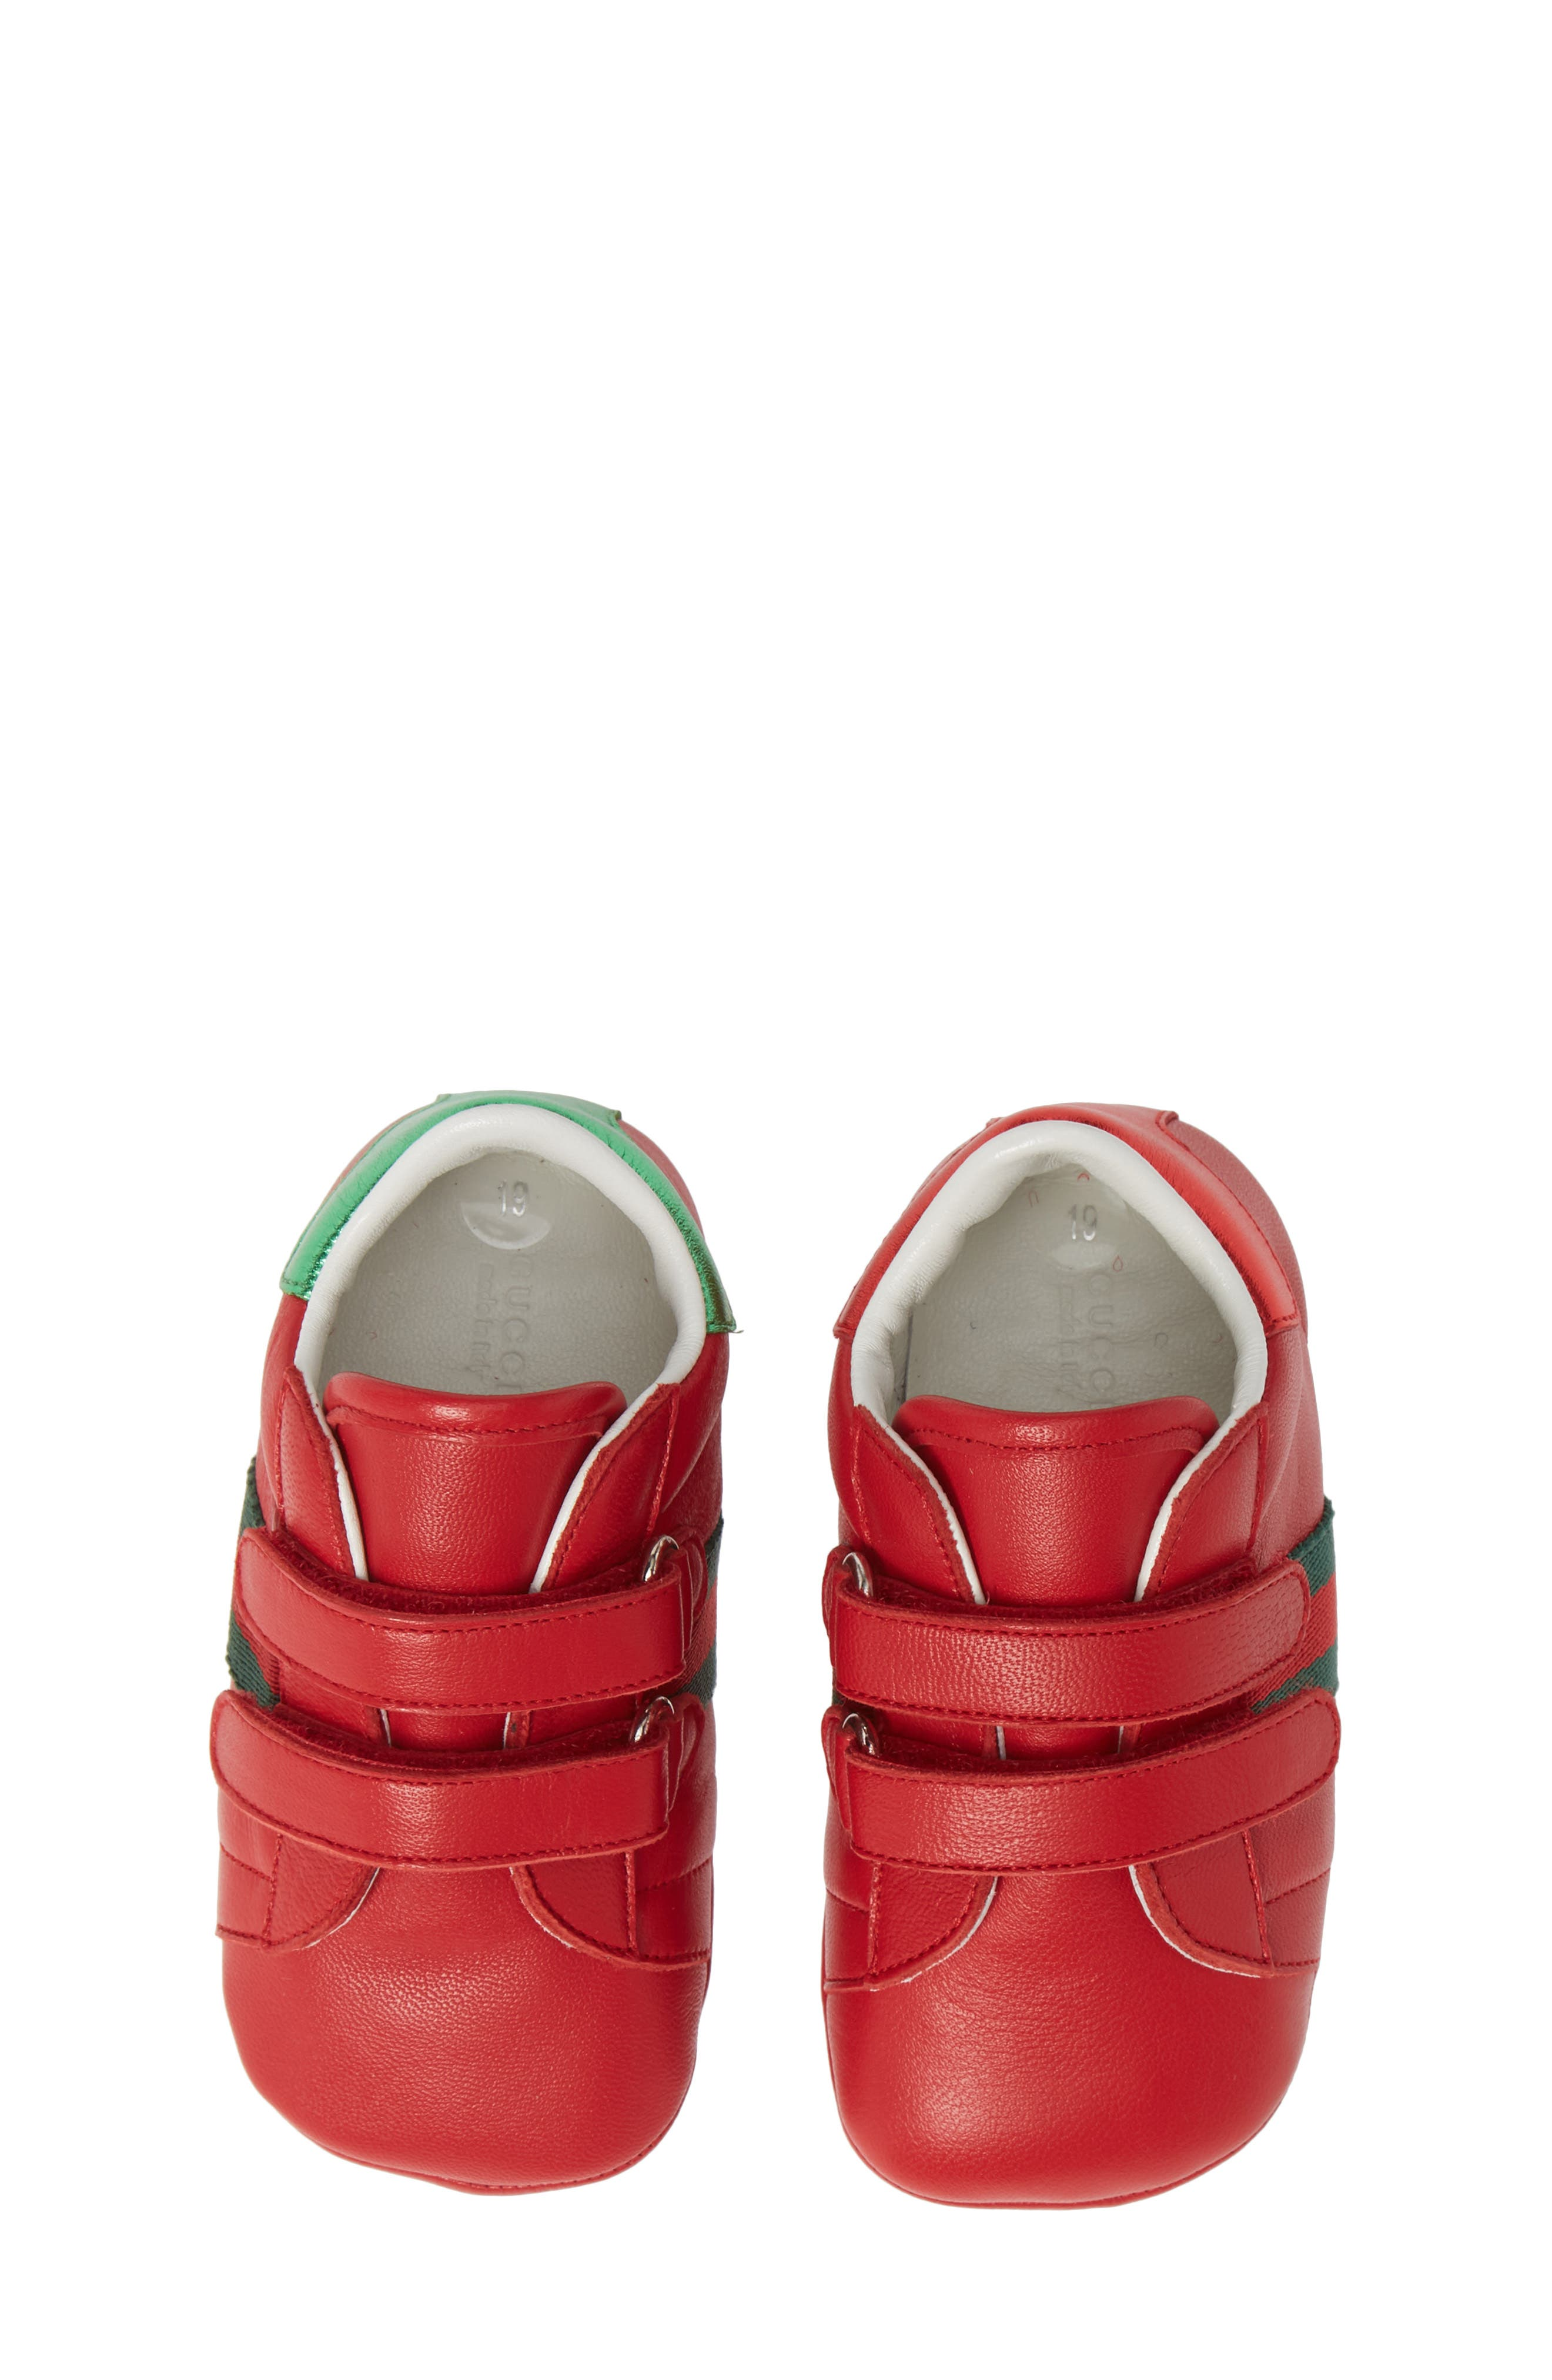 GUCCI Ace Crib Shoe, Main, color, RED